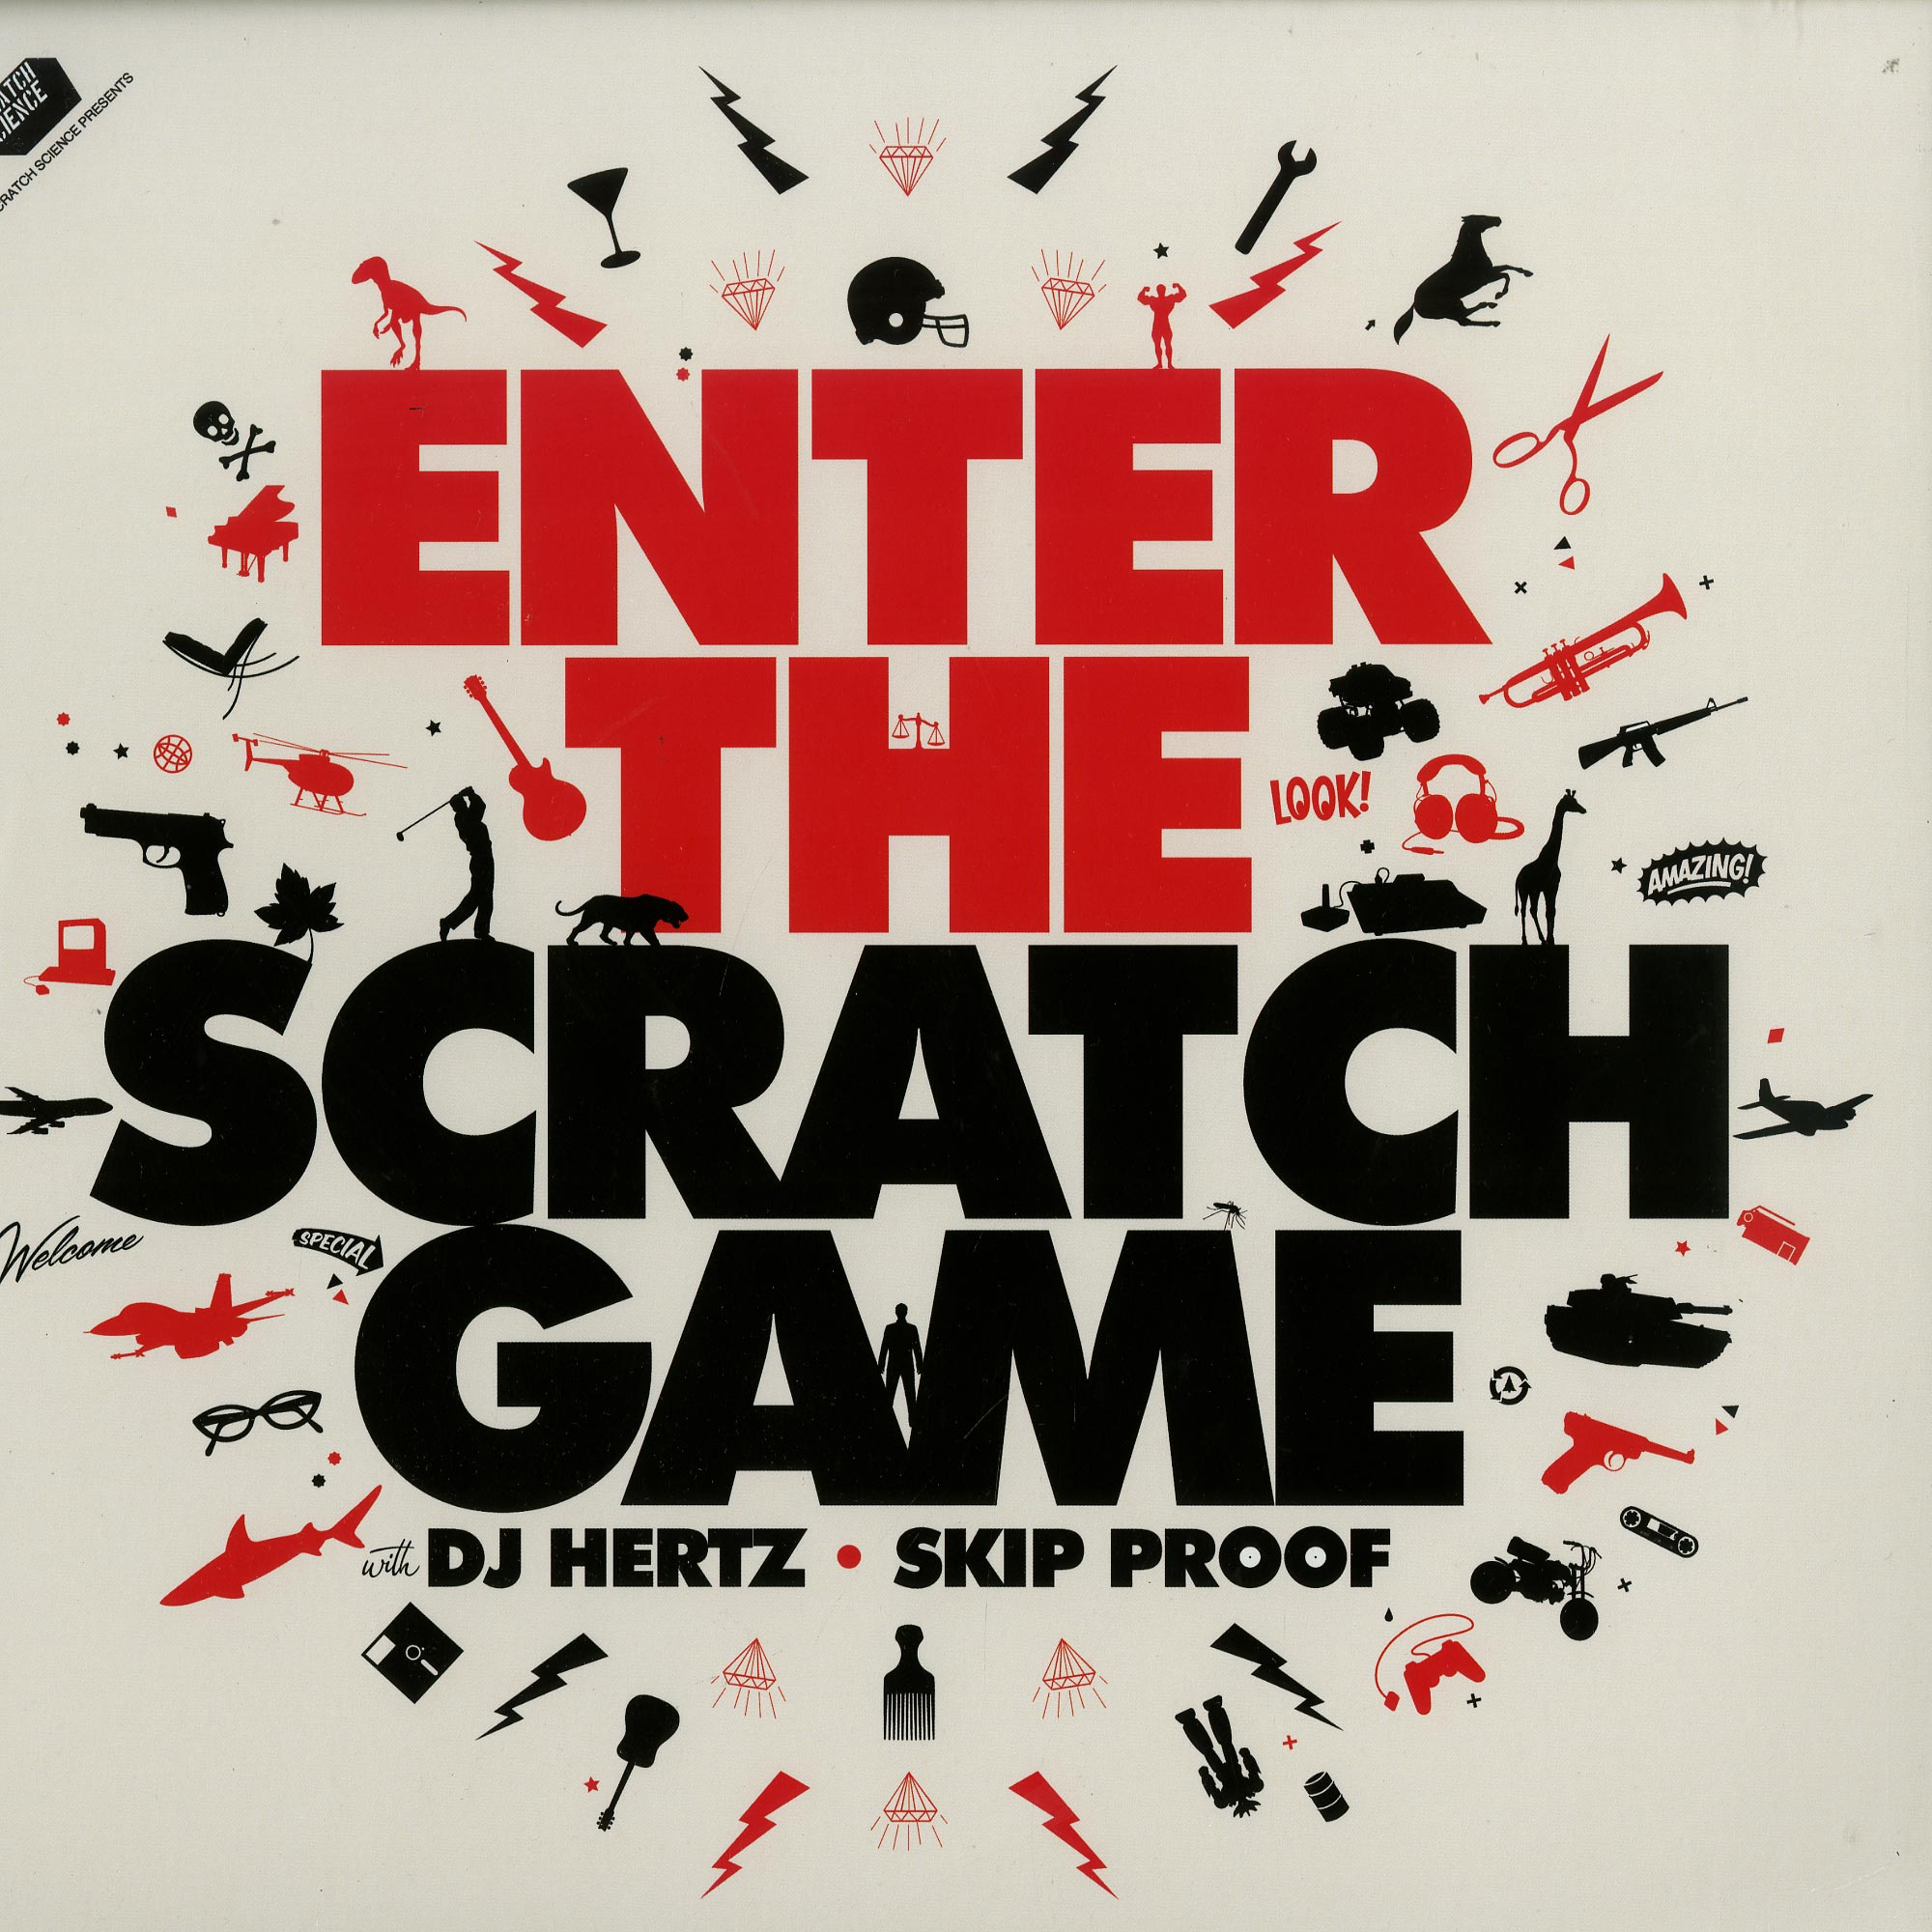 DJ Hertz - ENTER THE SCRATCH GAME